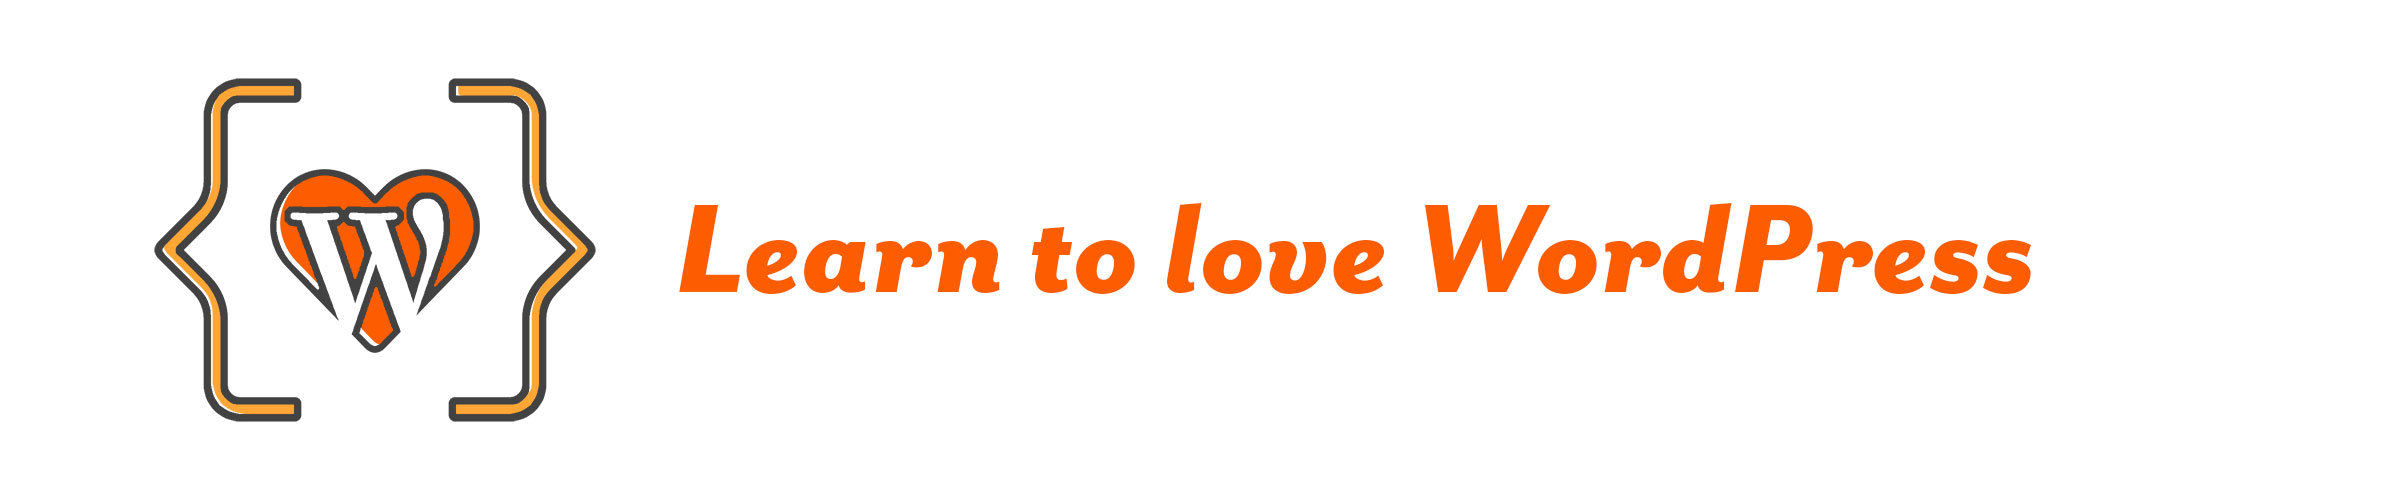 Cover learn to love wordpress logo